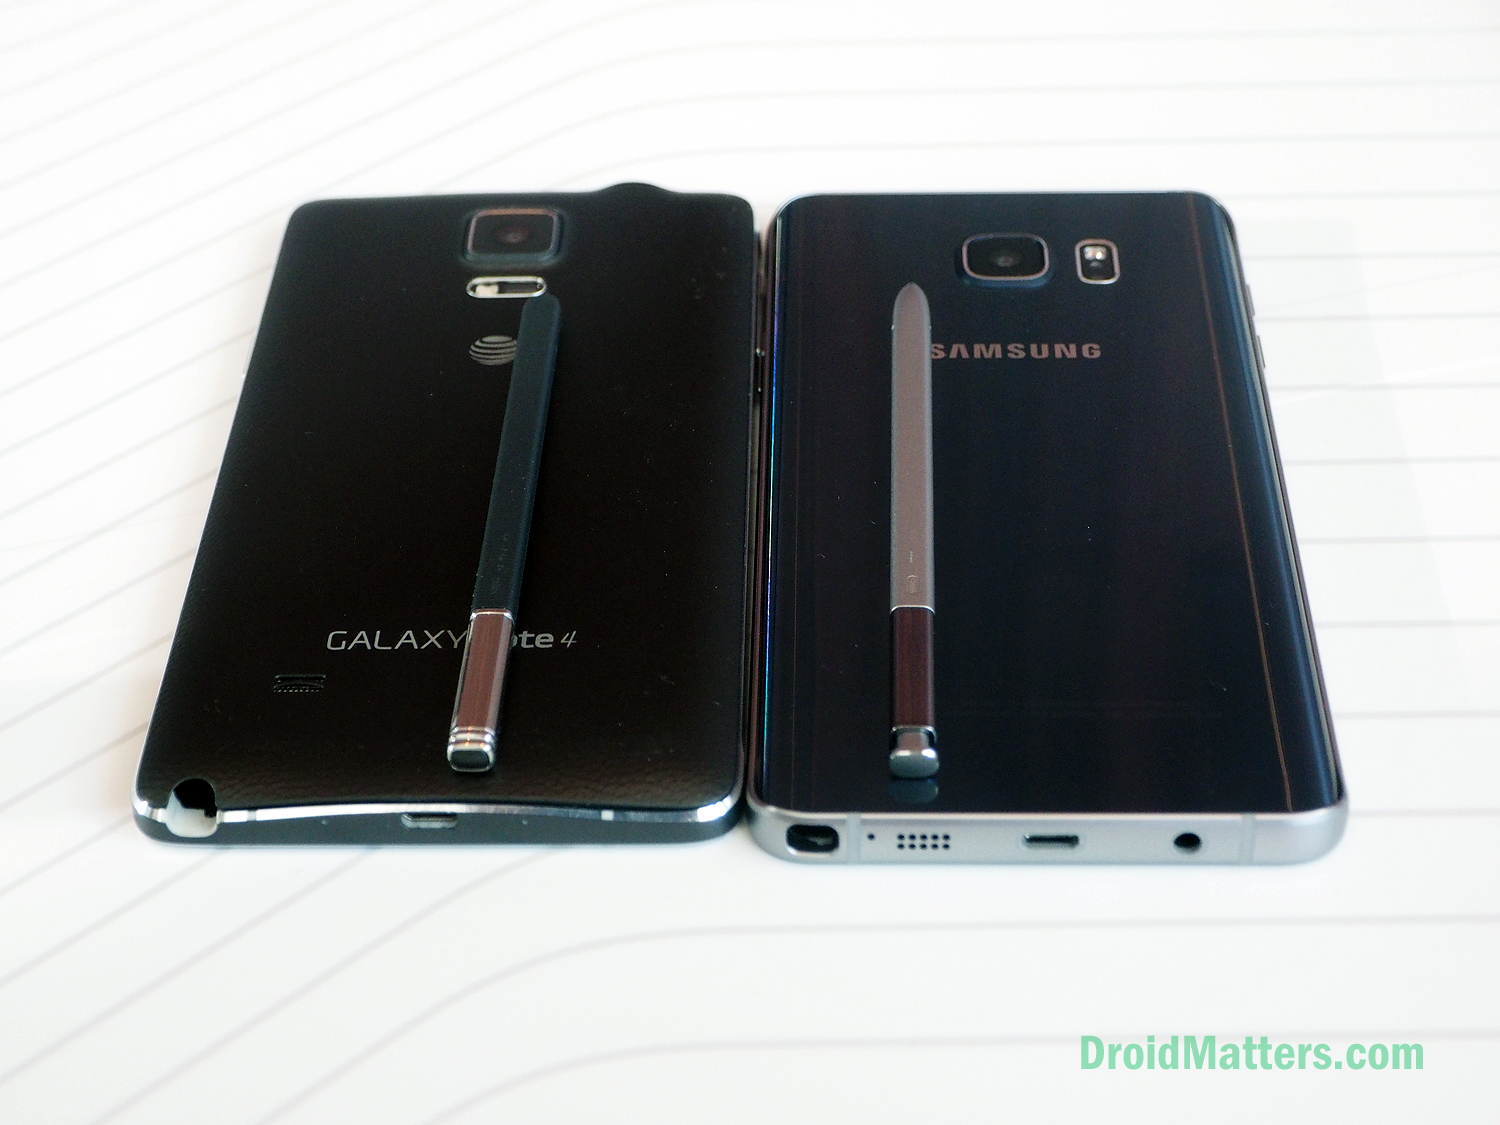 Whether you like or not, the Galaxy Note 5 is still a Power User device!